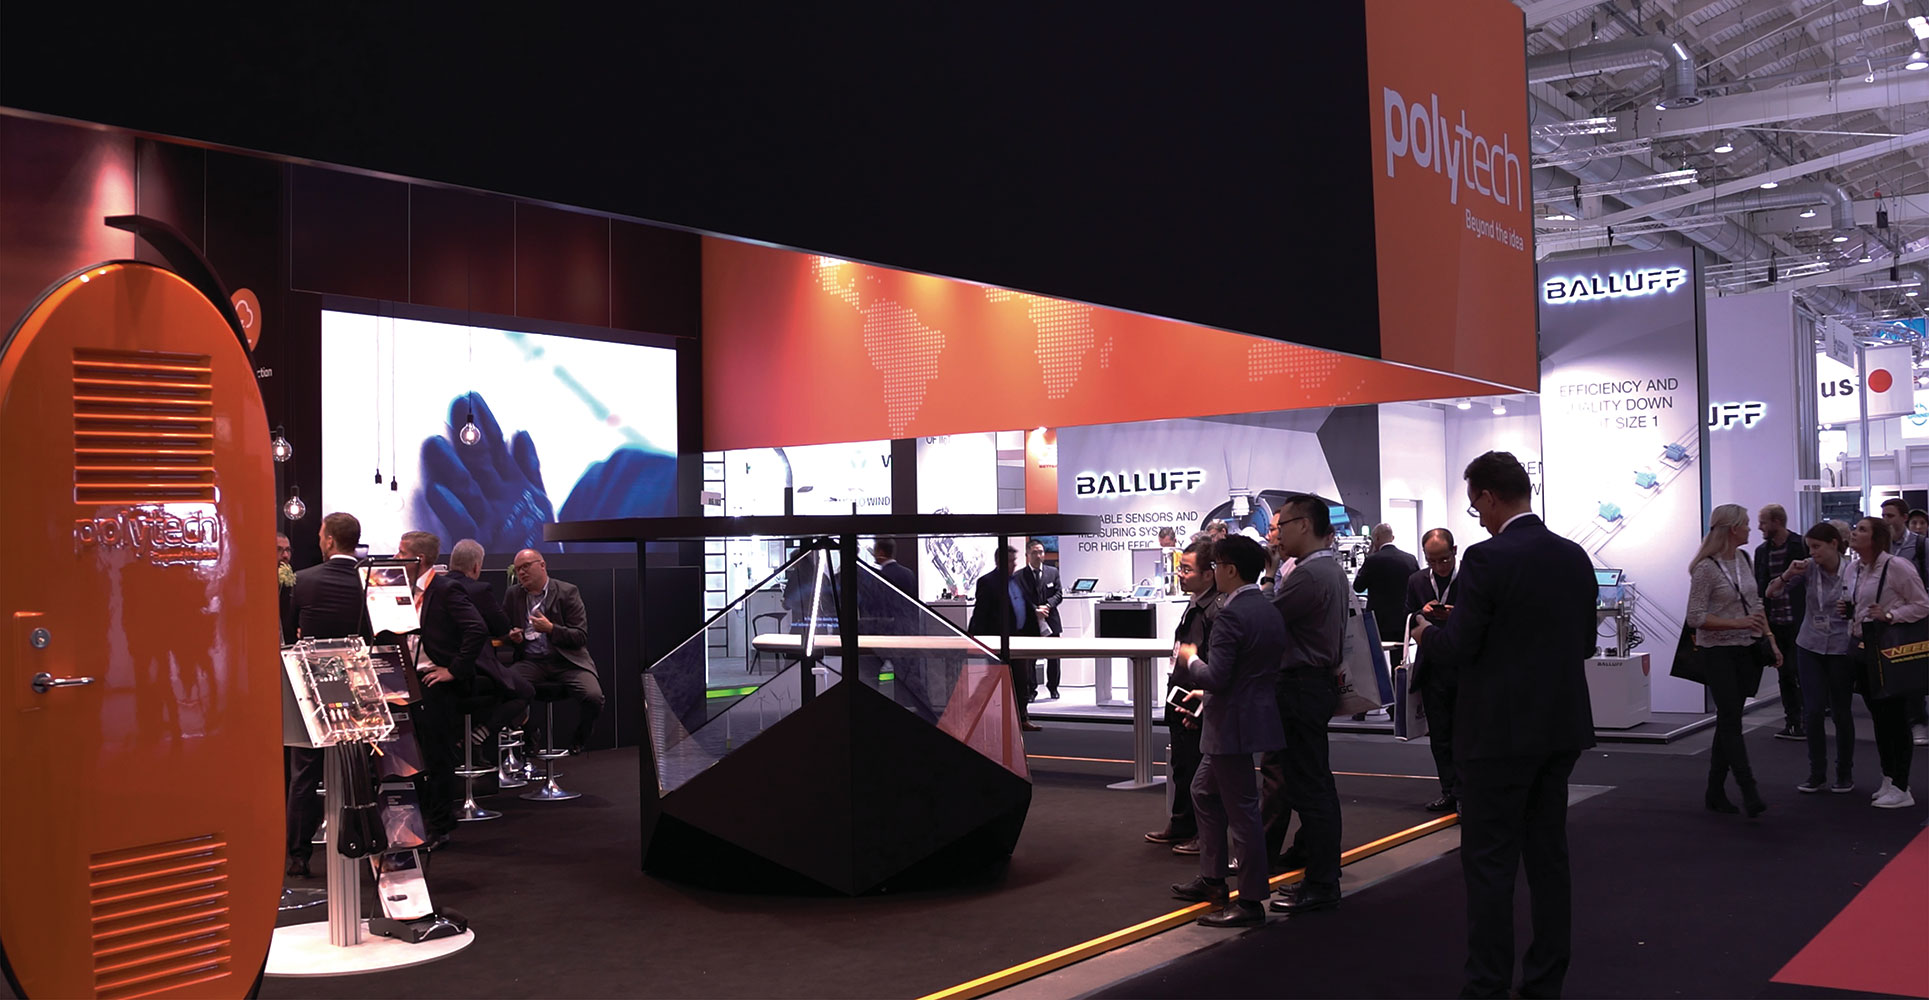 Marketing activation at an expo using a Dreamoc Diamond holographic display for the company PolyTech